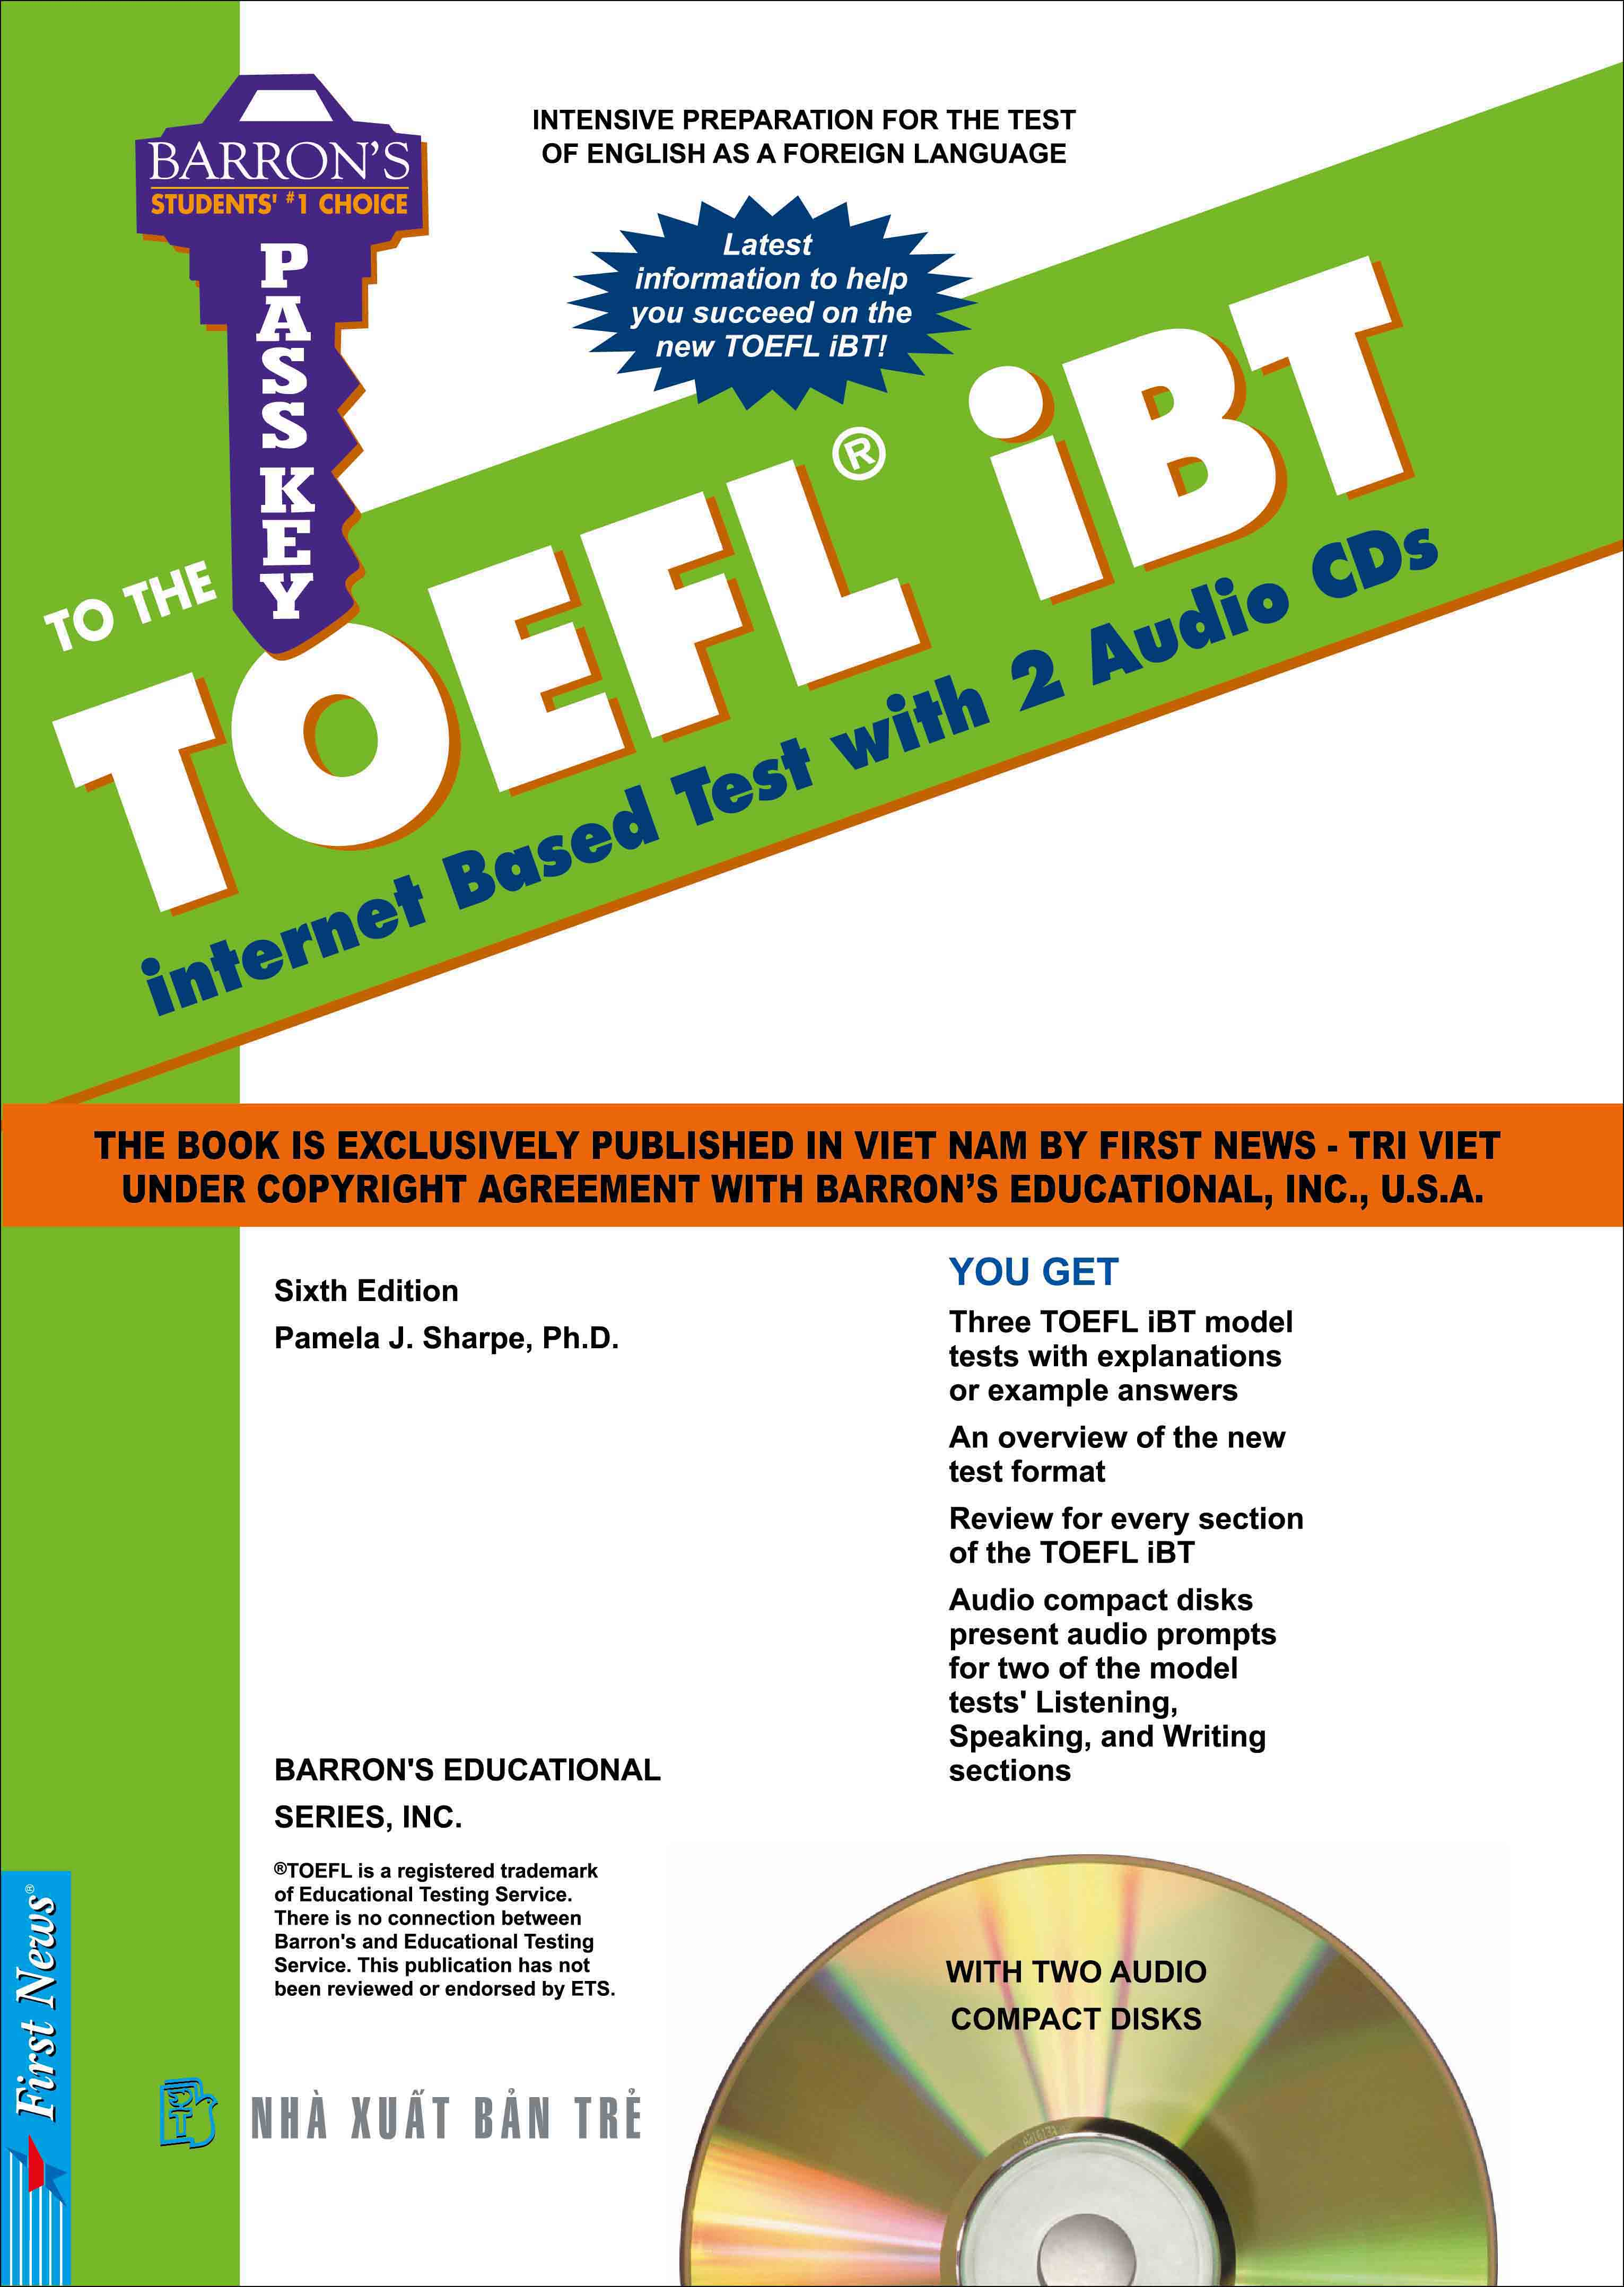 BARRON'S PASSKEY TO THE TOEFL IBT (Sách + 2 CD)